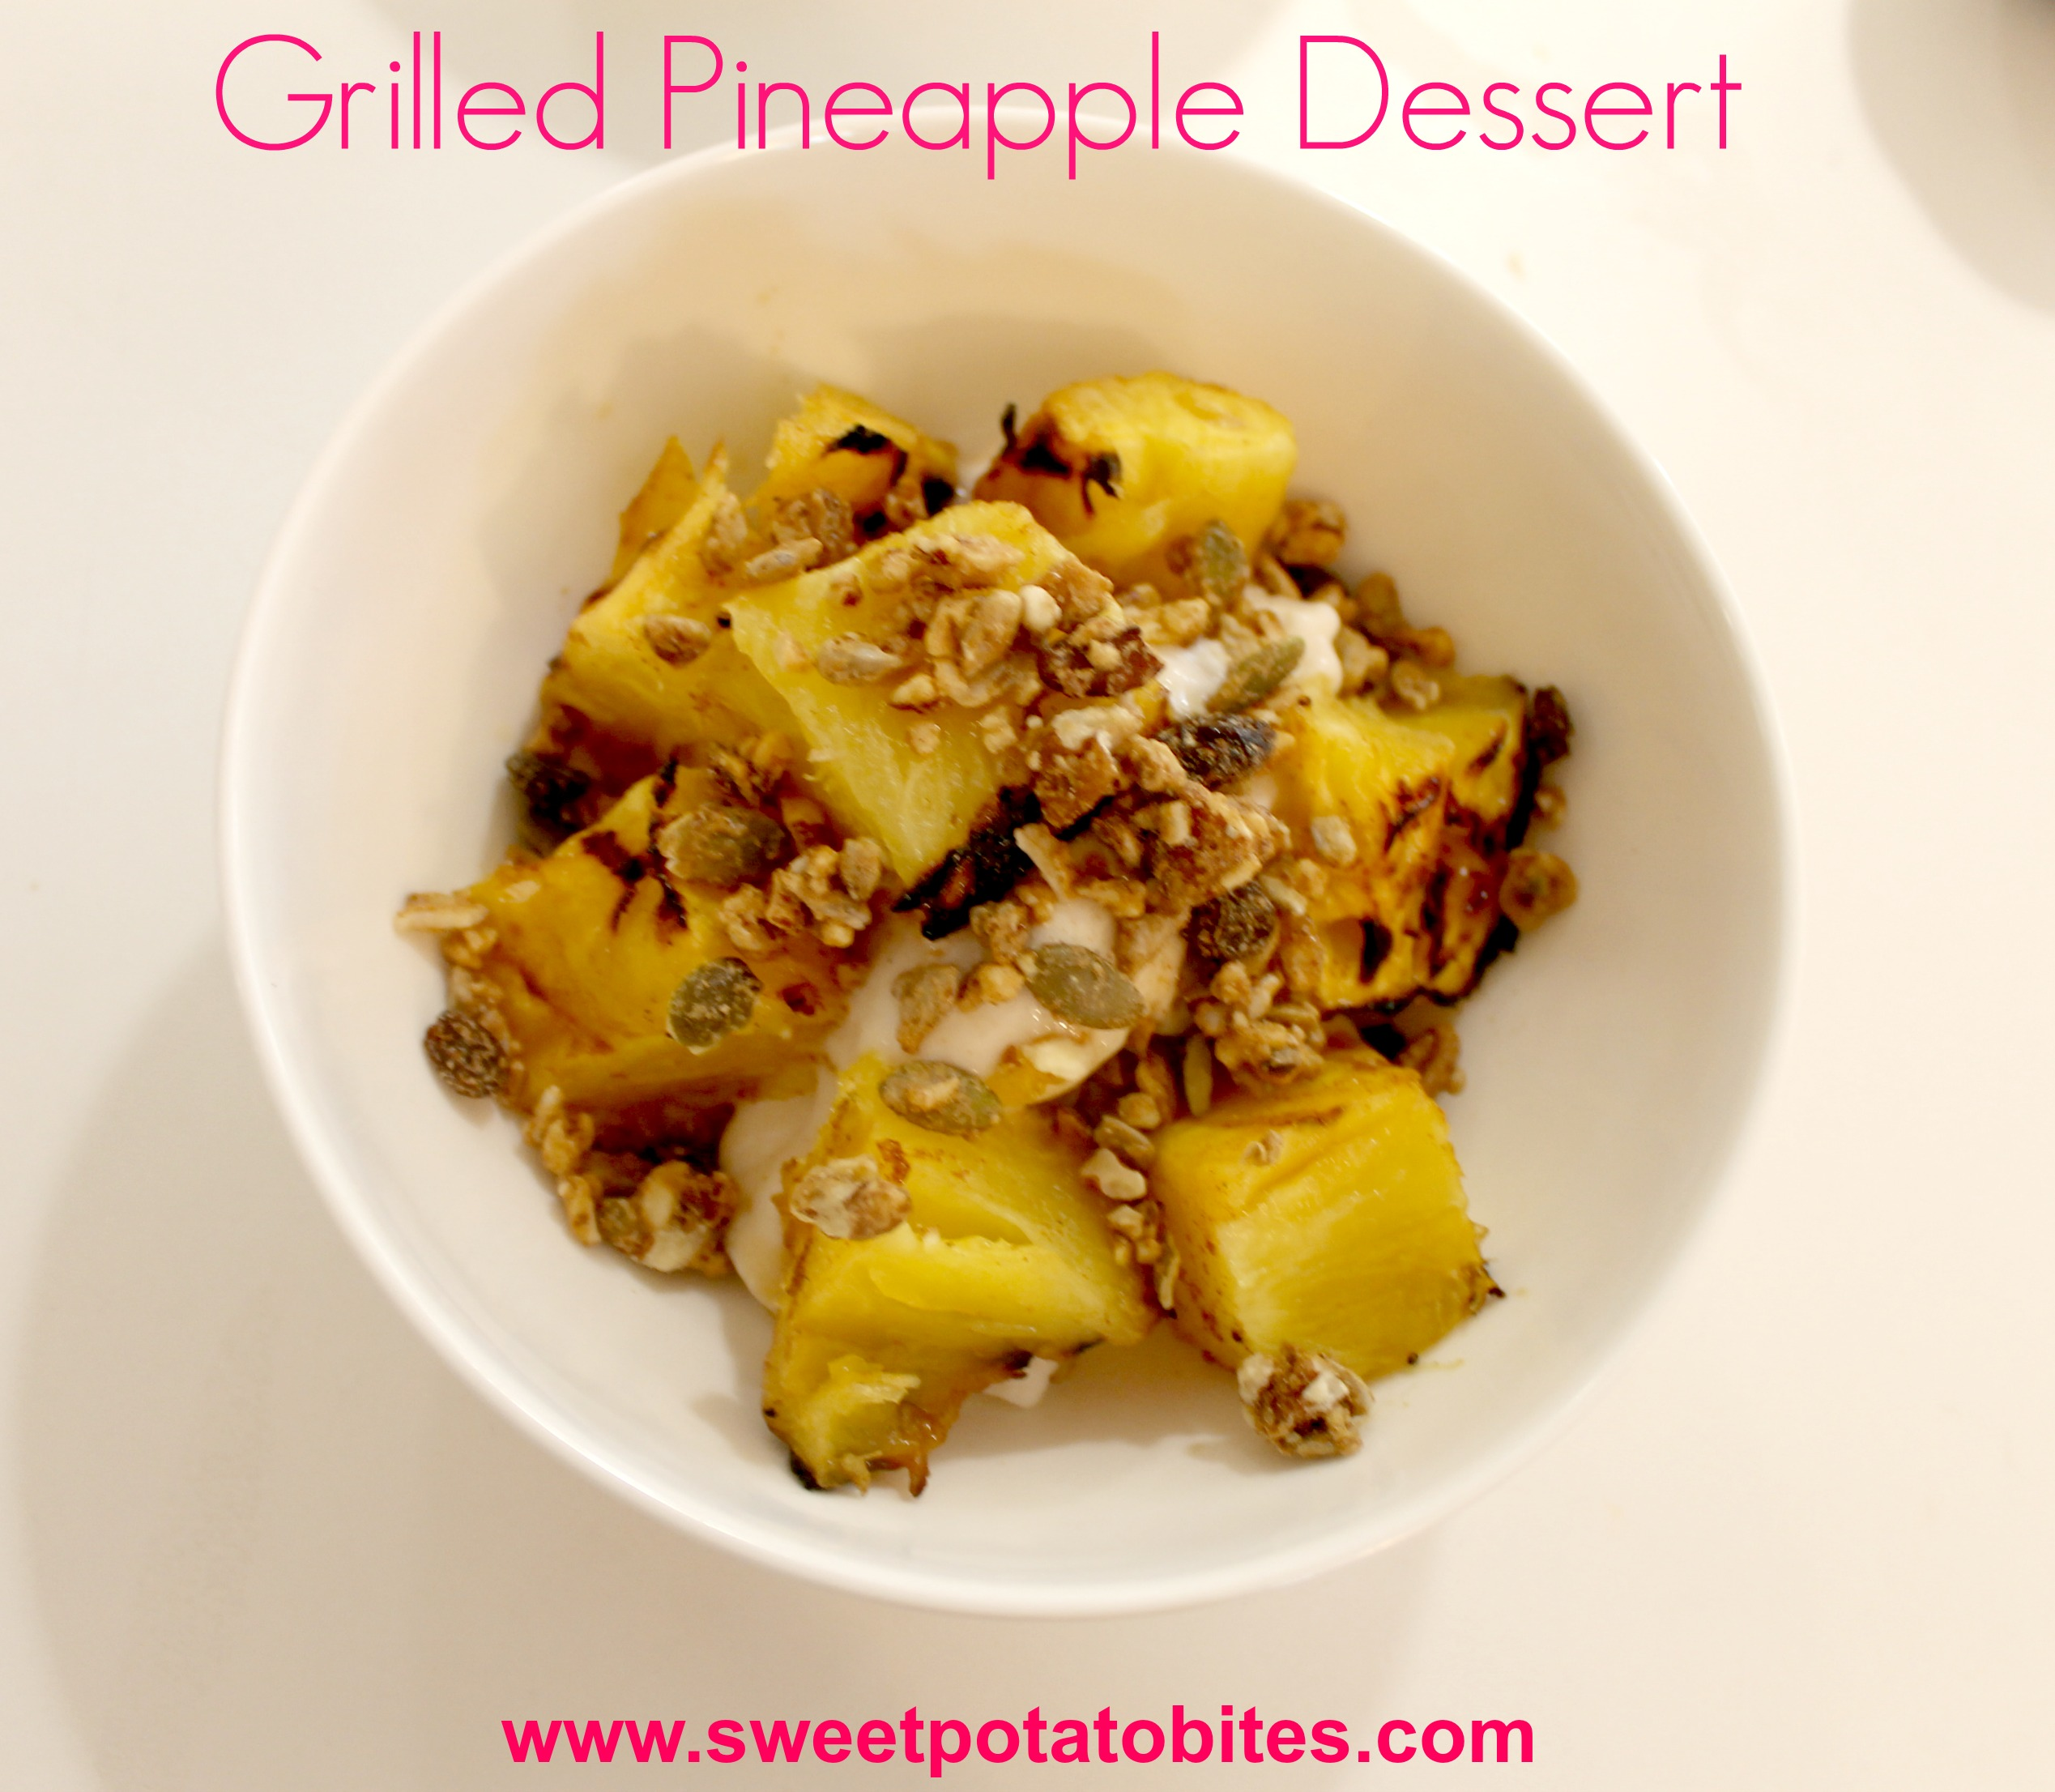 Grilled Pineapple Dessert pin